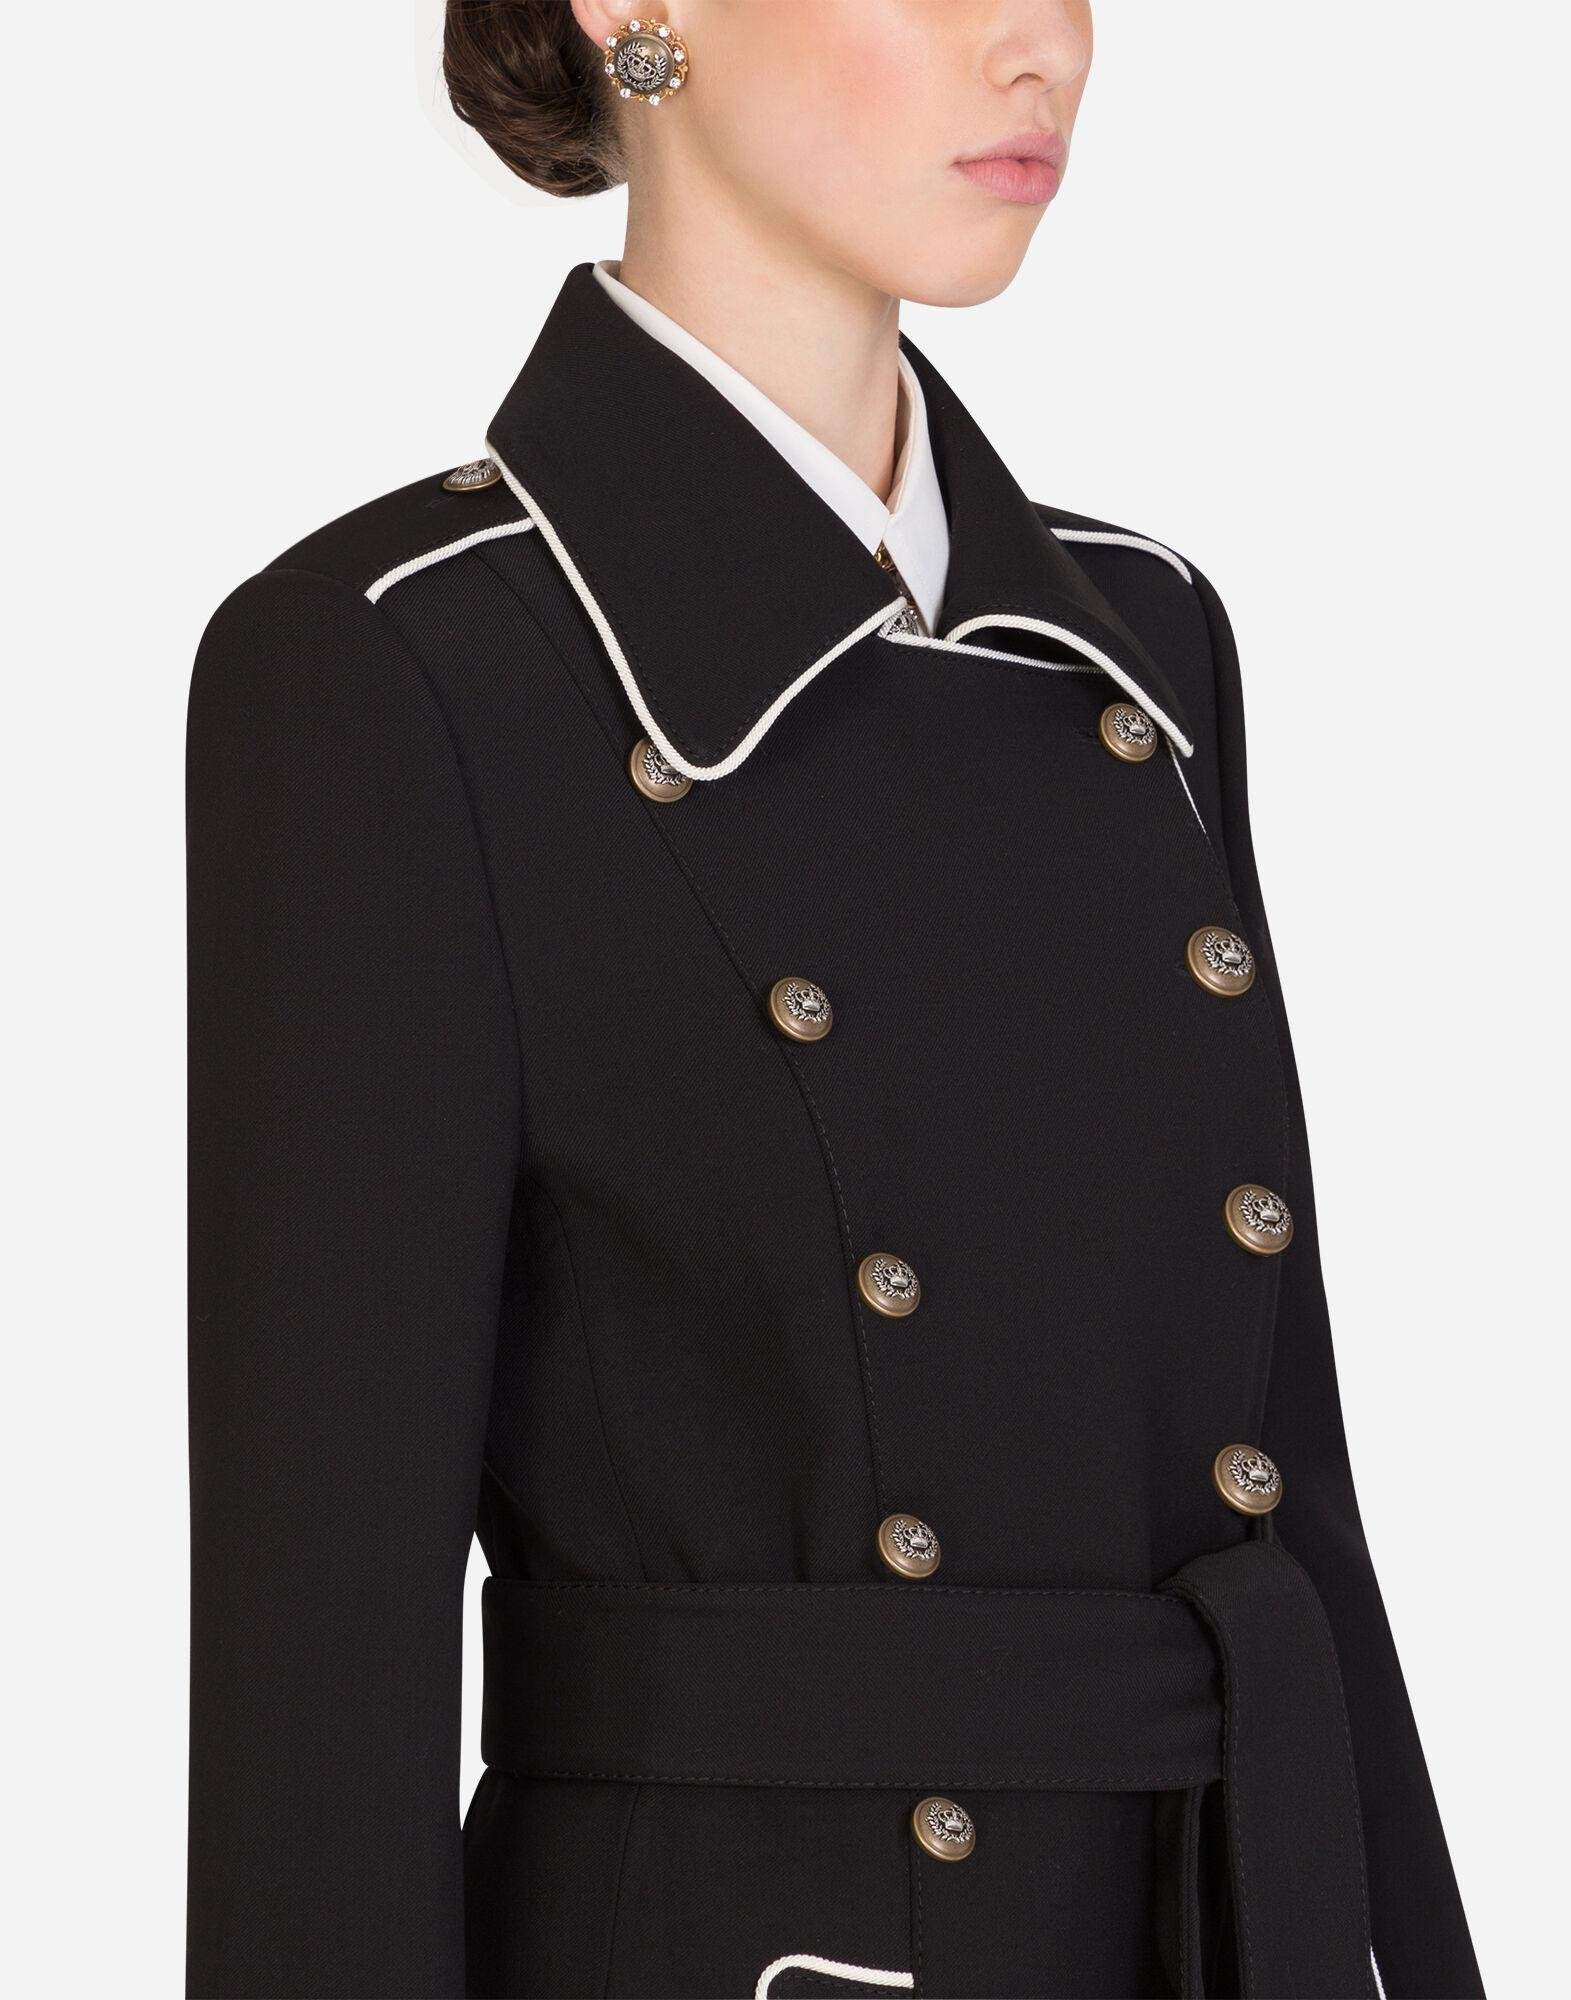 Woolen peacoat with decorative buttons 4